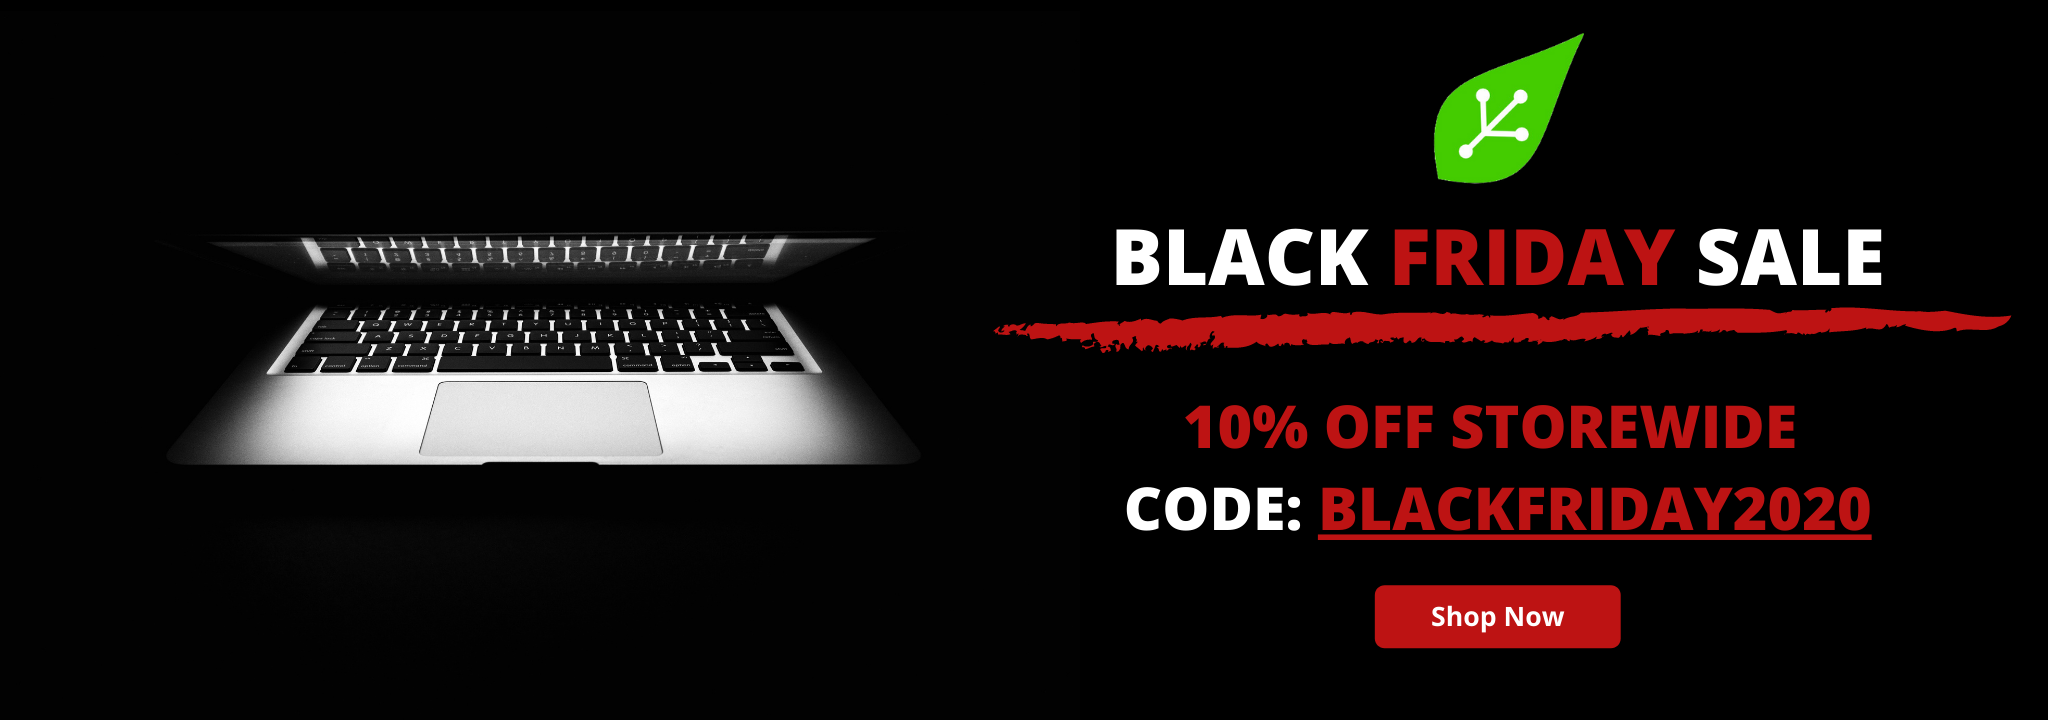 black-friday-promotion-page.png